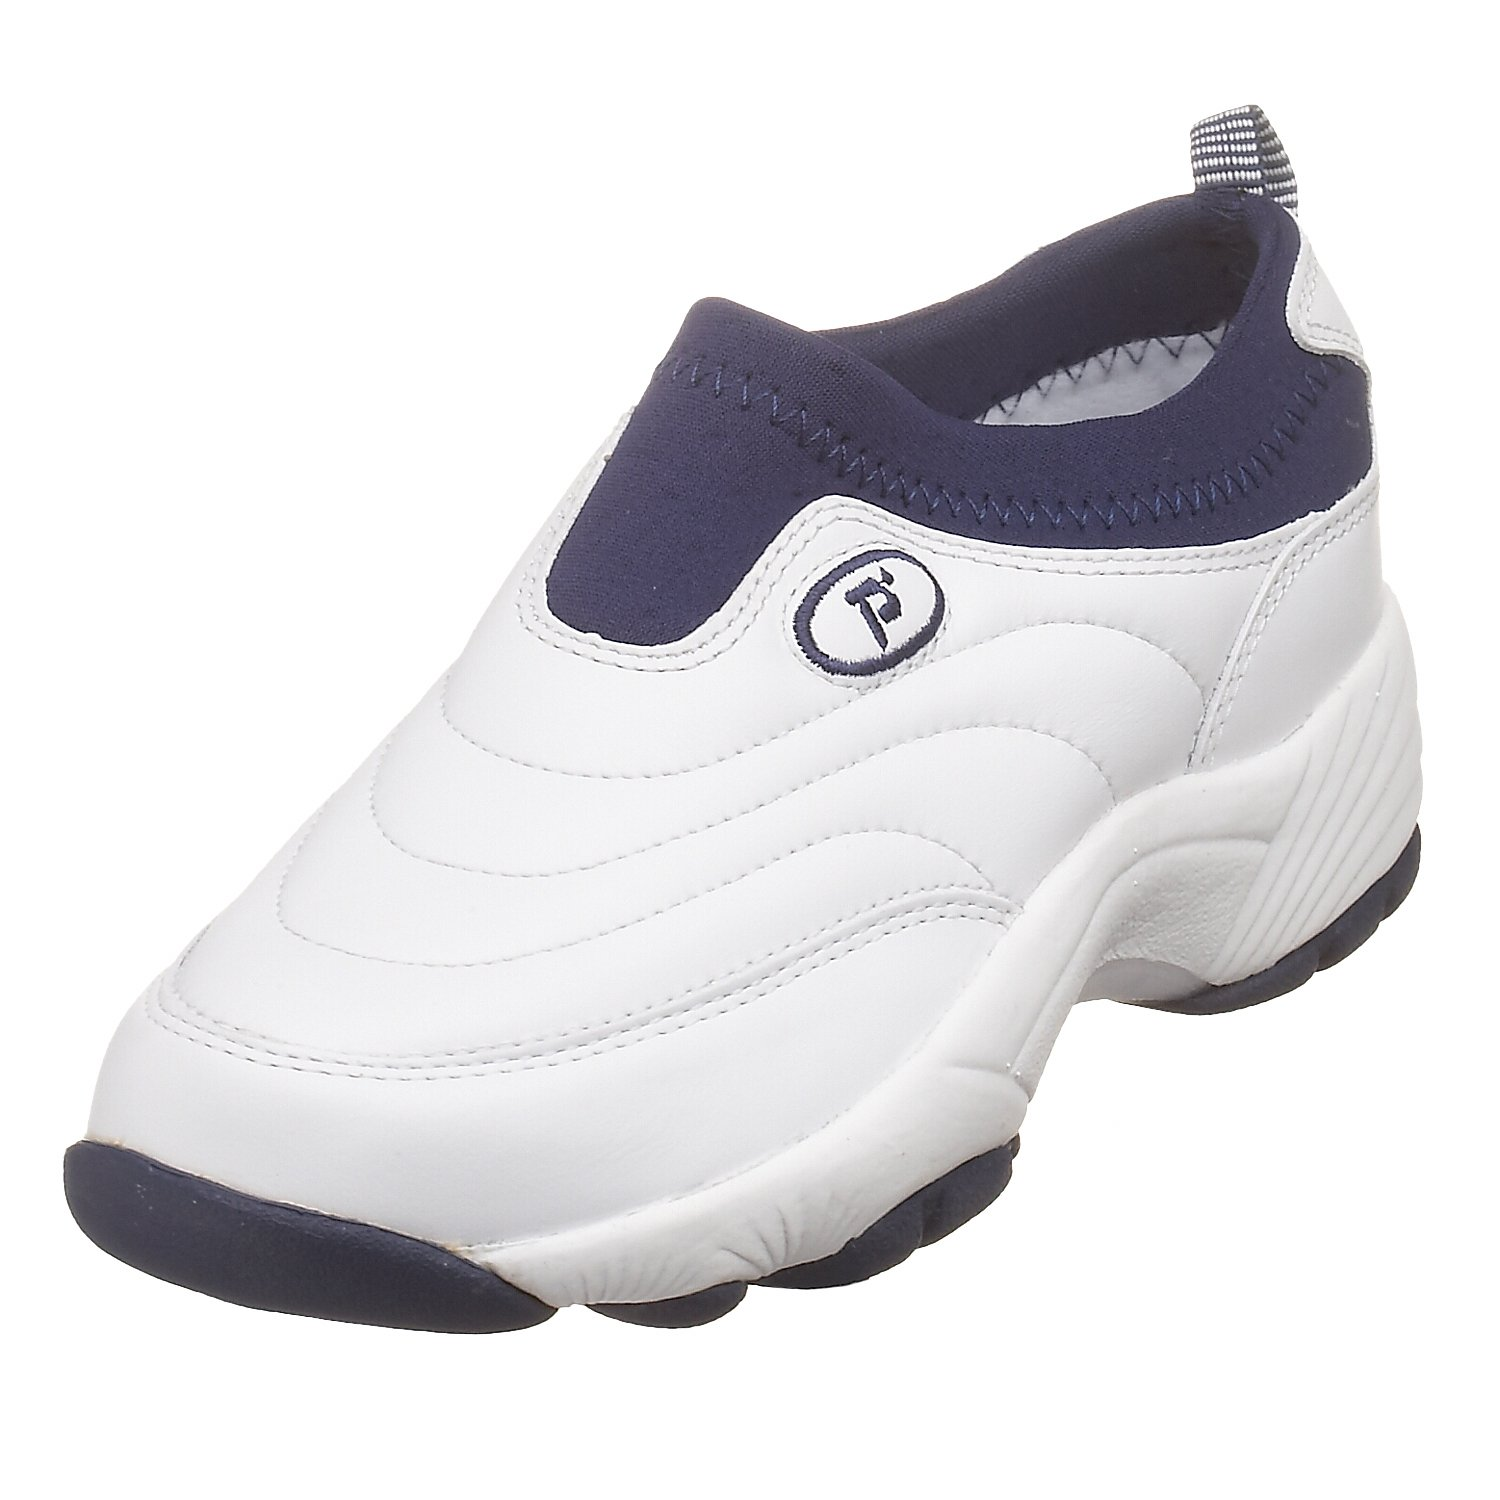 Propet Women's W3851 Wash & Wear Slip-On B000BO12QQ 11 W (US Women's 11 D)|White Navy